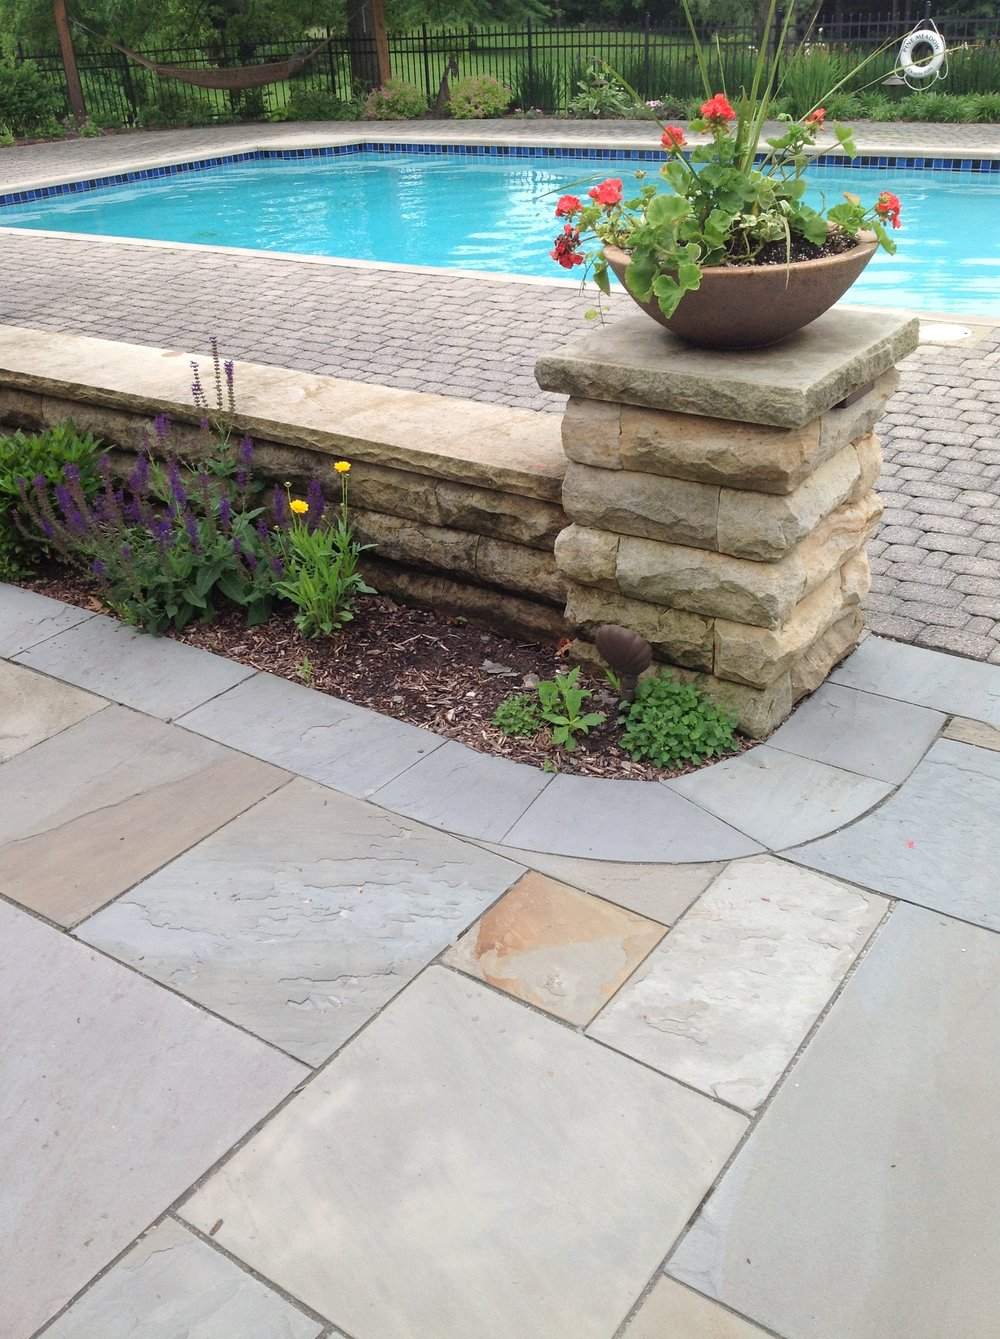 Unilock landscaping companies in Pepper Pike, Ohio with top patio pavers and retaining wall